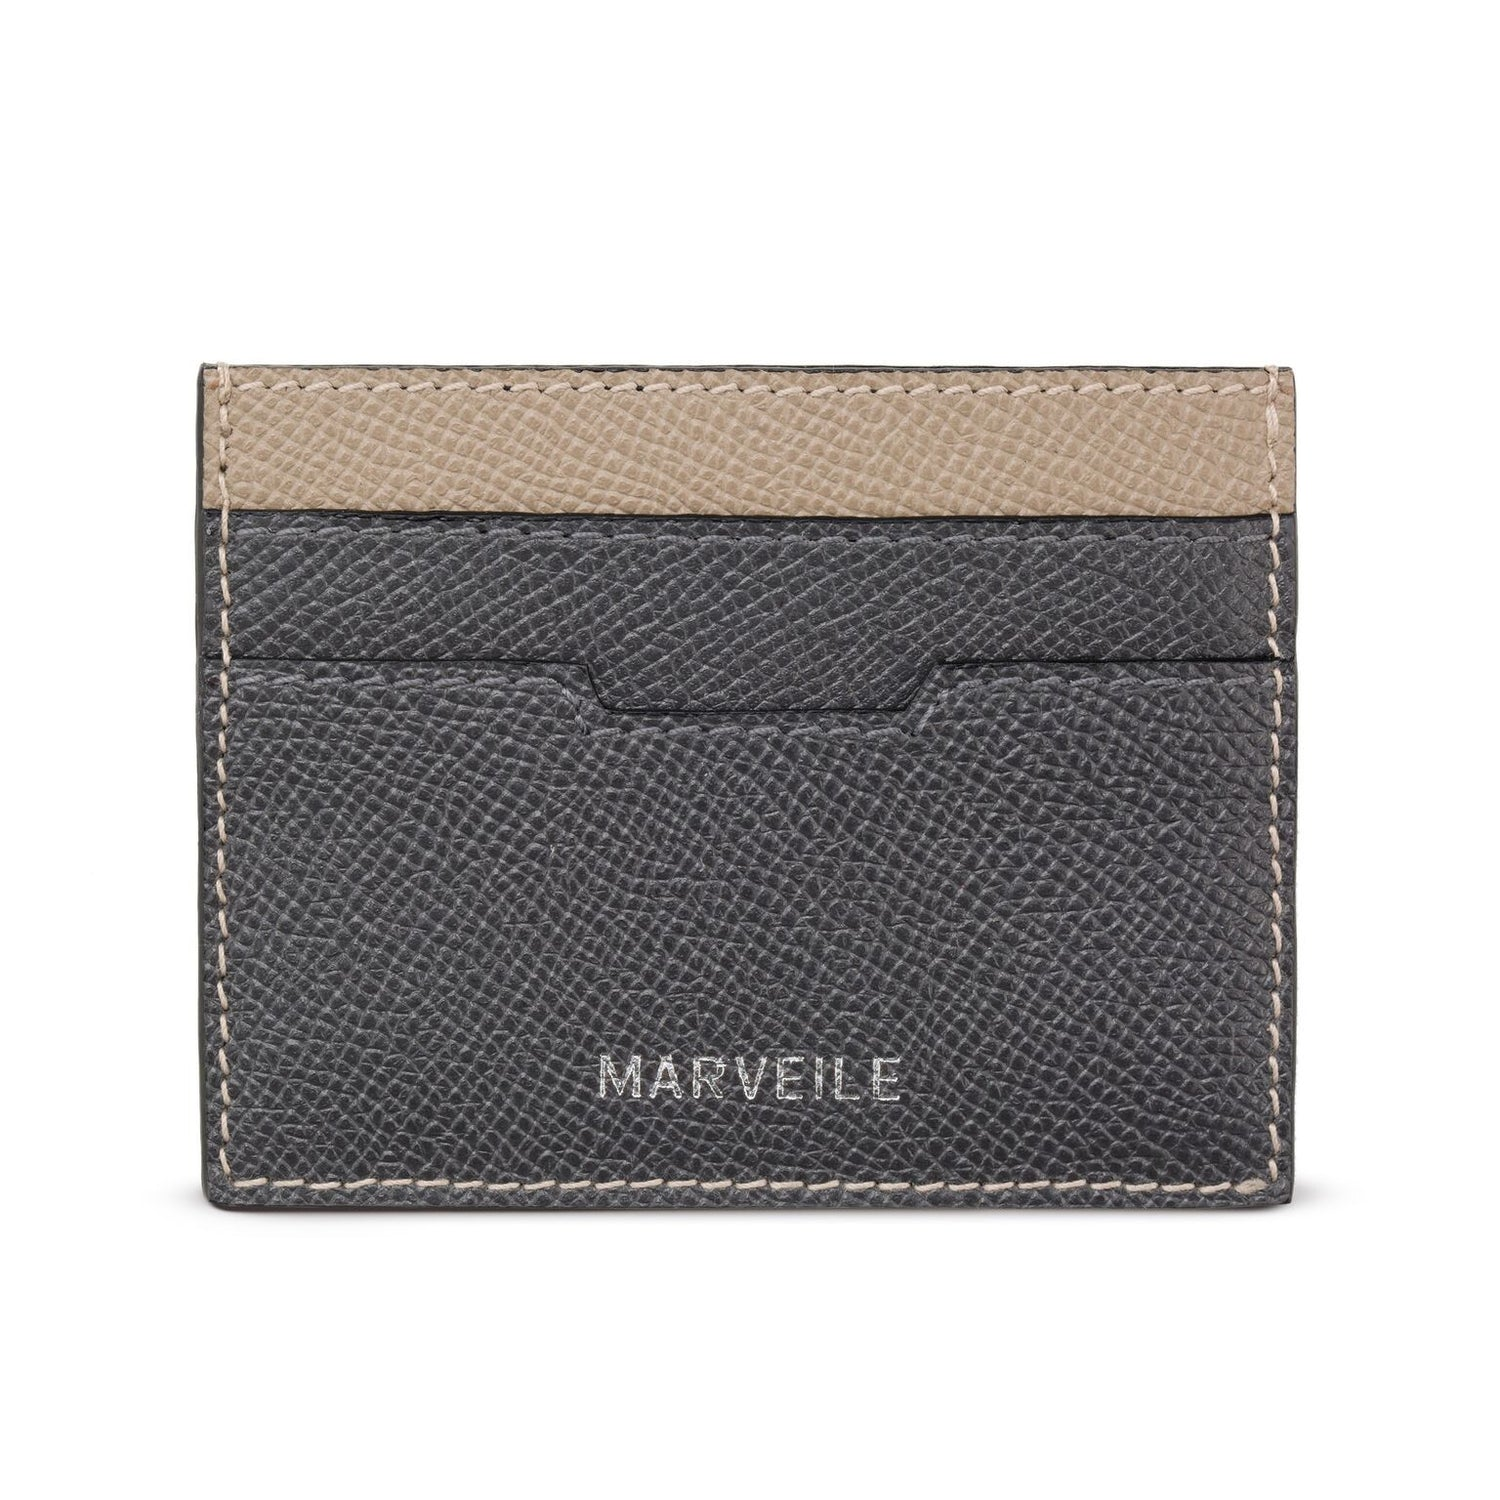 Marveile Grey Two-Tone